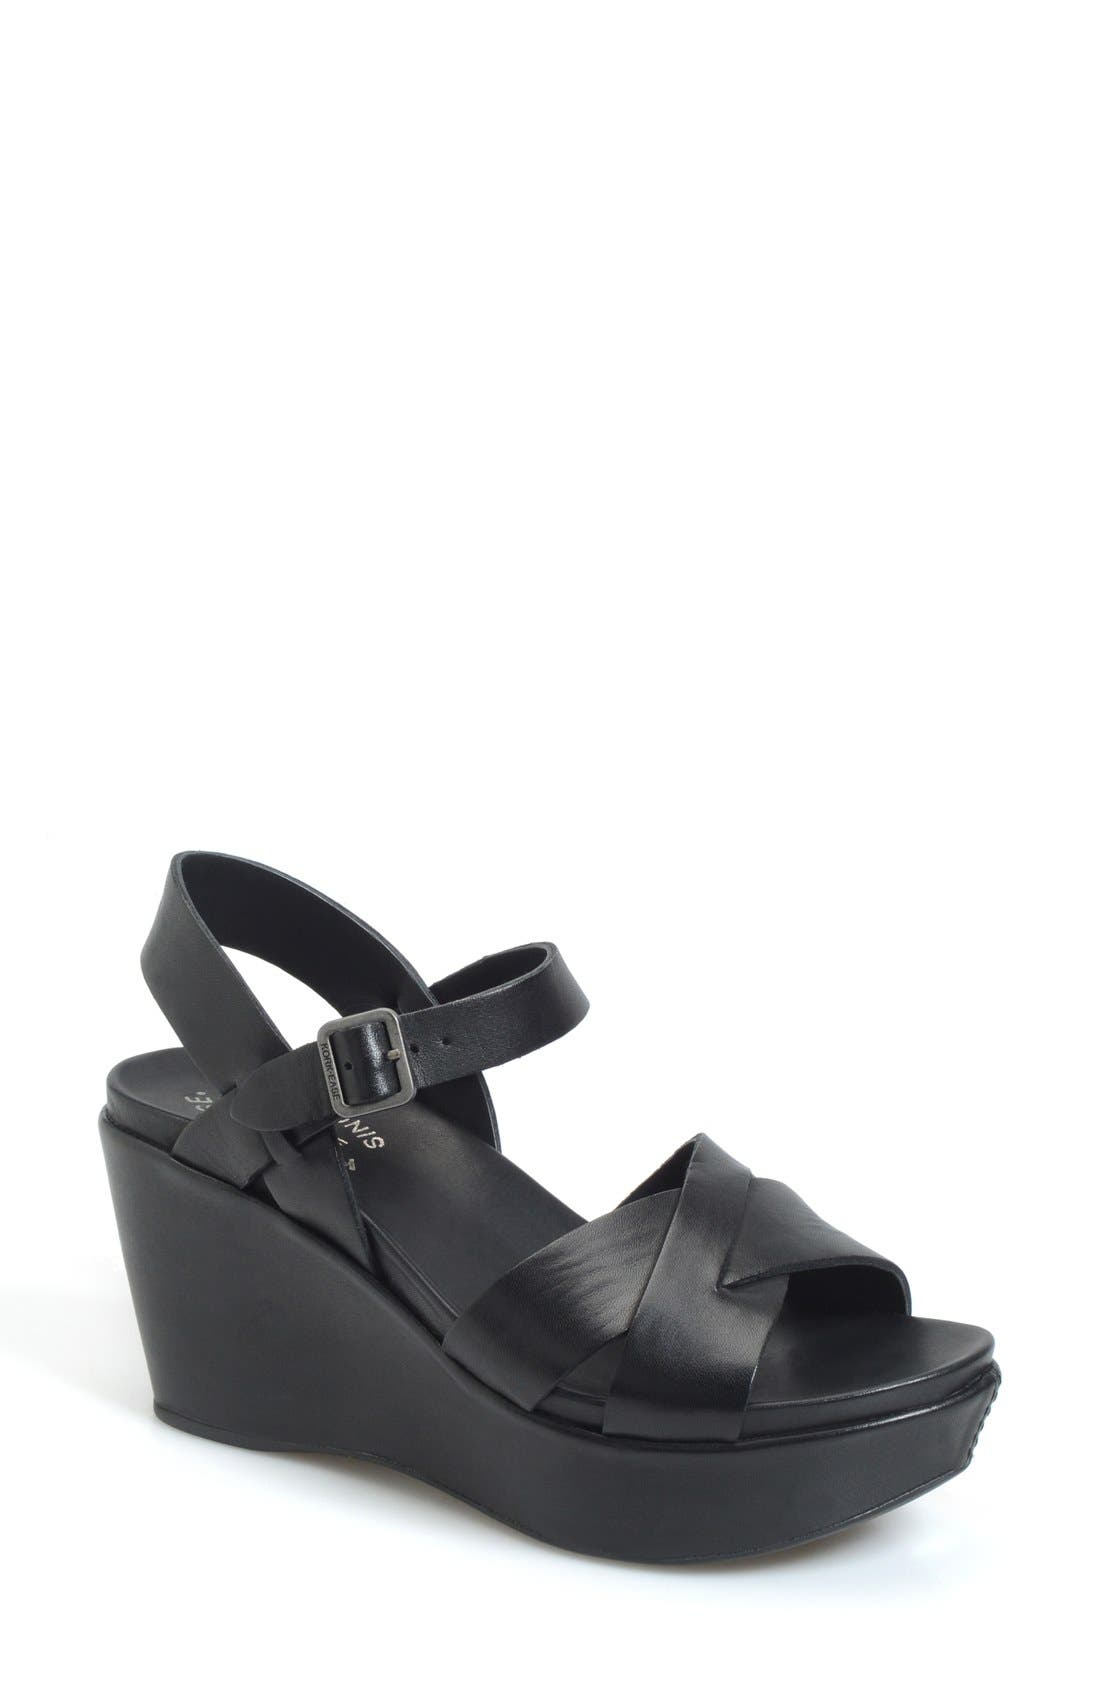 'Ava 2.0' Platform Wedge Sandal,                             Main thumbnail 1, color,                             BLACK